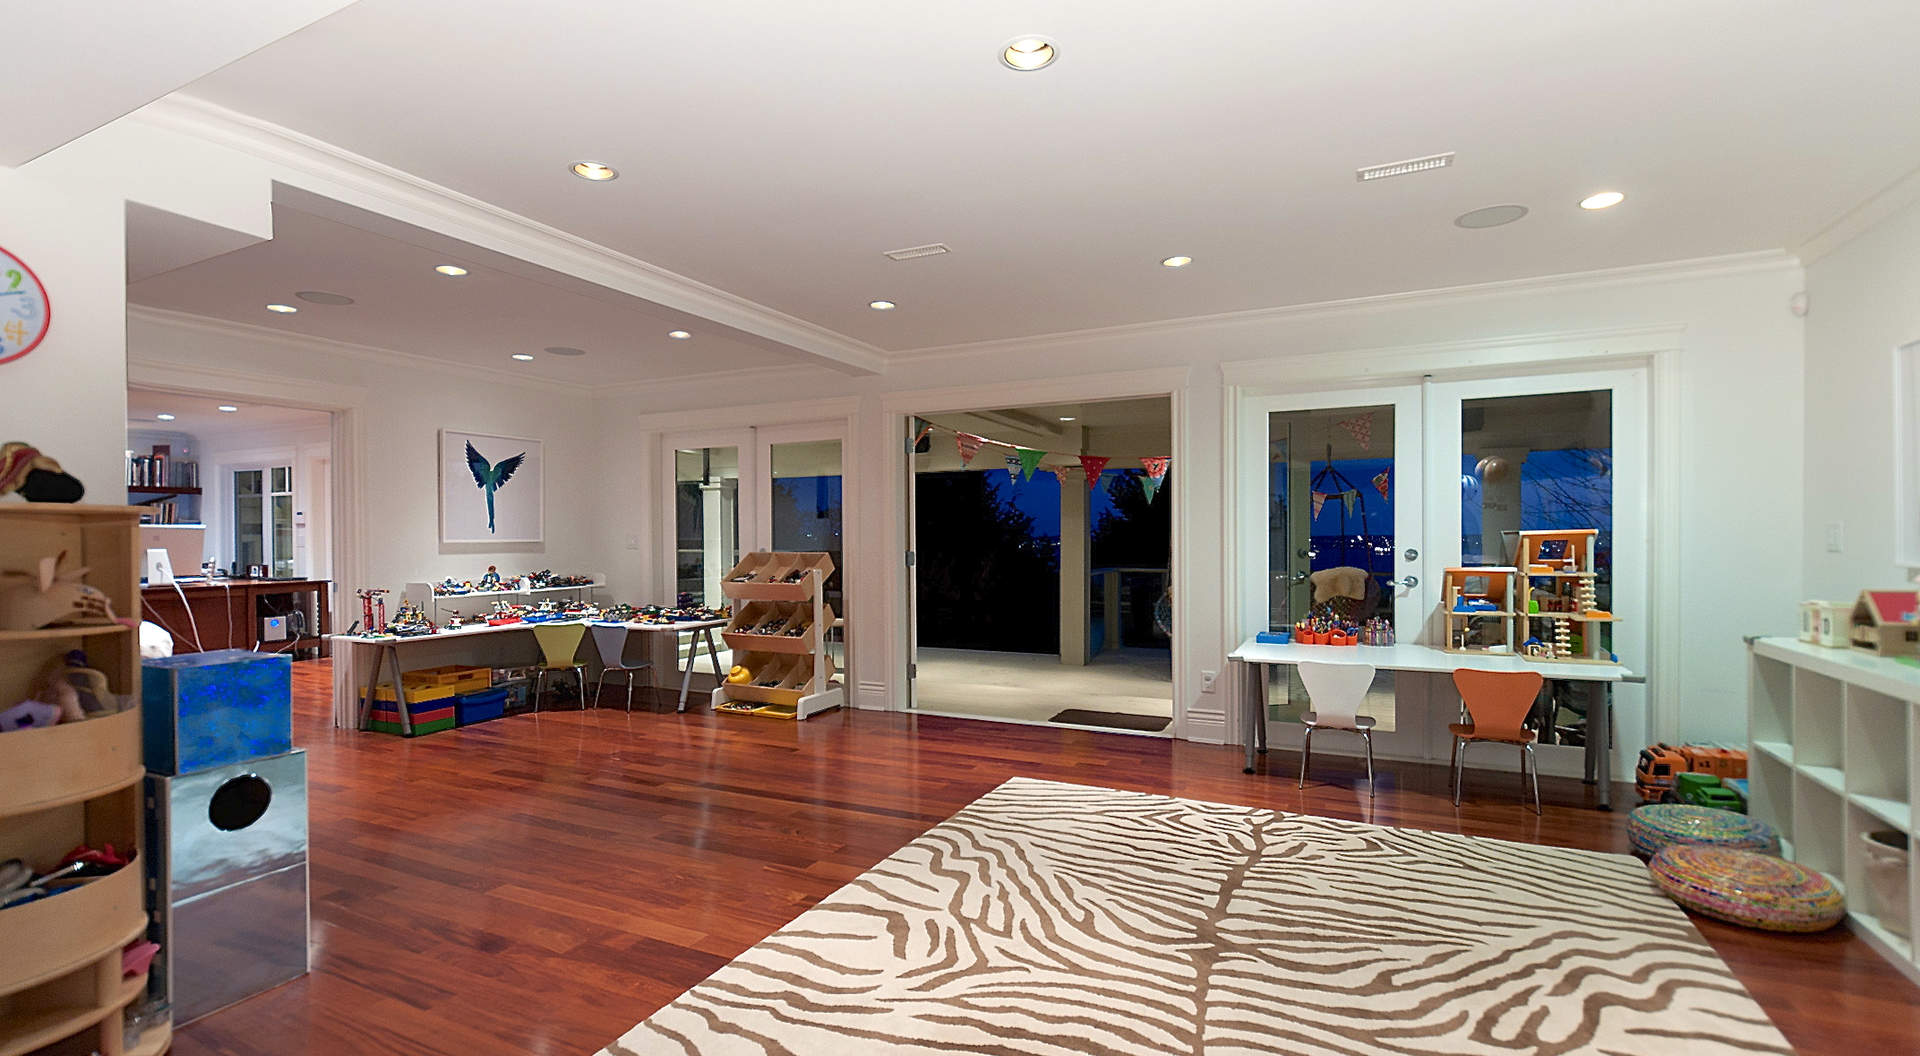 Sensational Recreation Room Downstairs